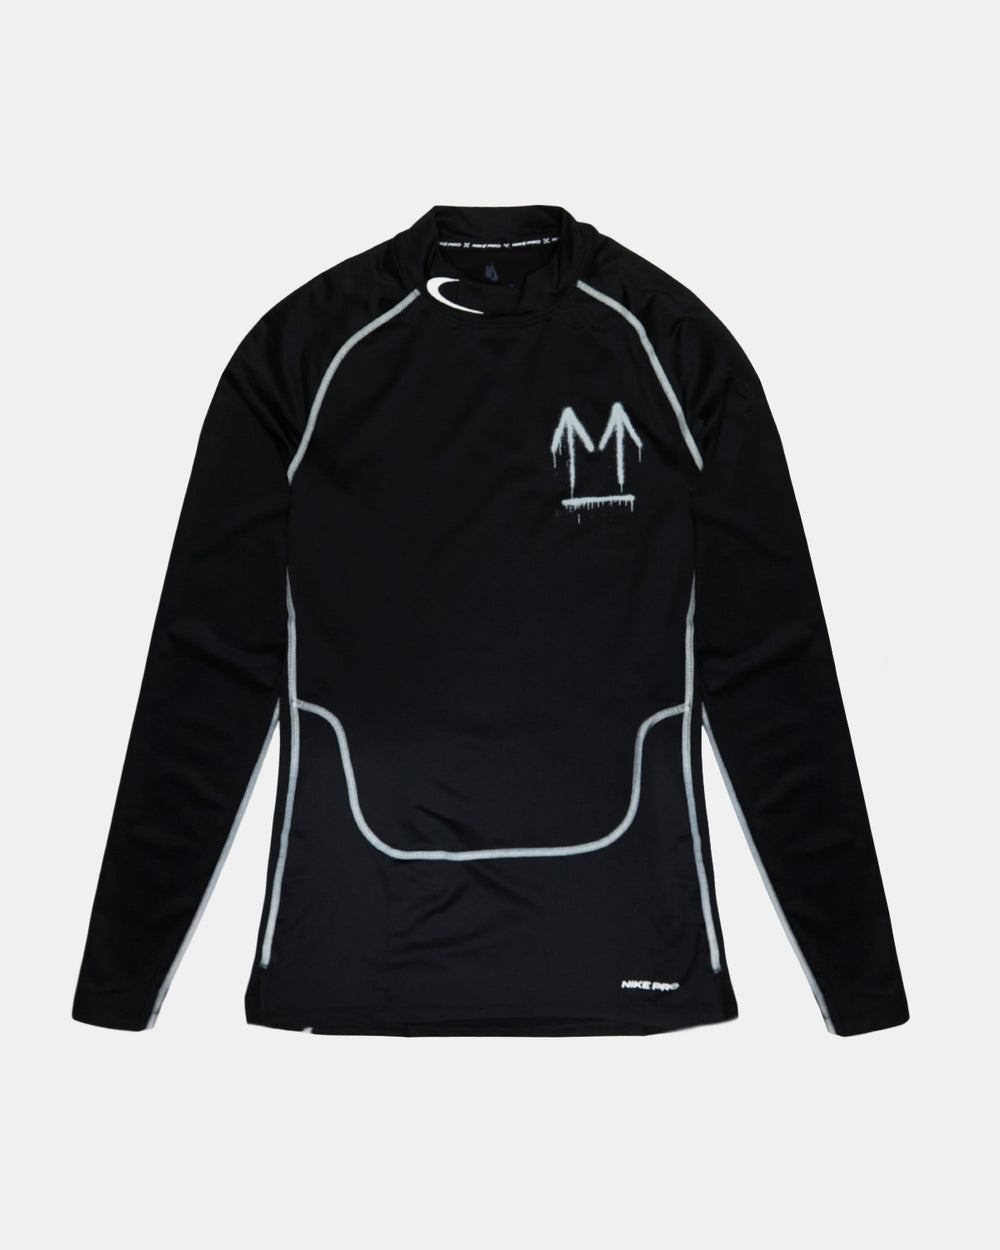 Nike - Nike x Off-White Running Long Sleeve Tee (Black)